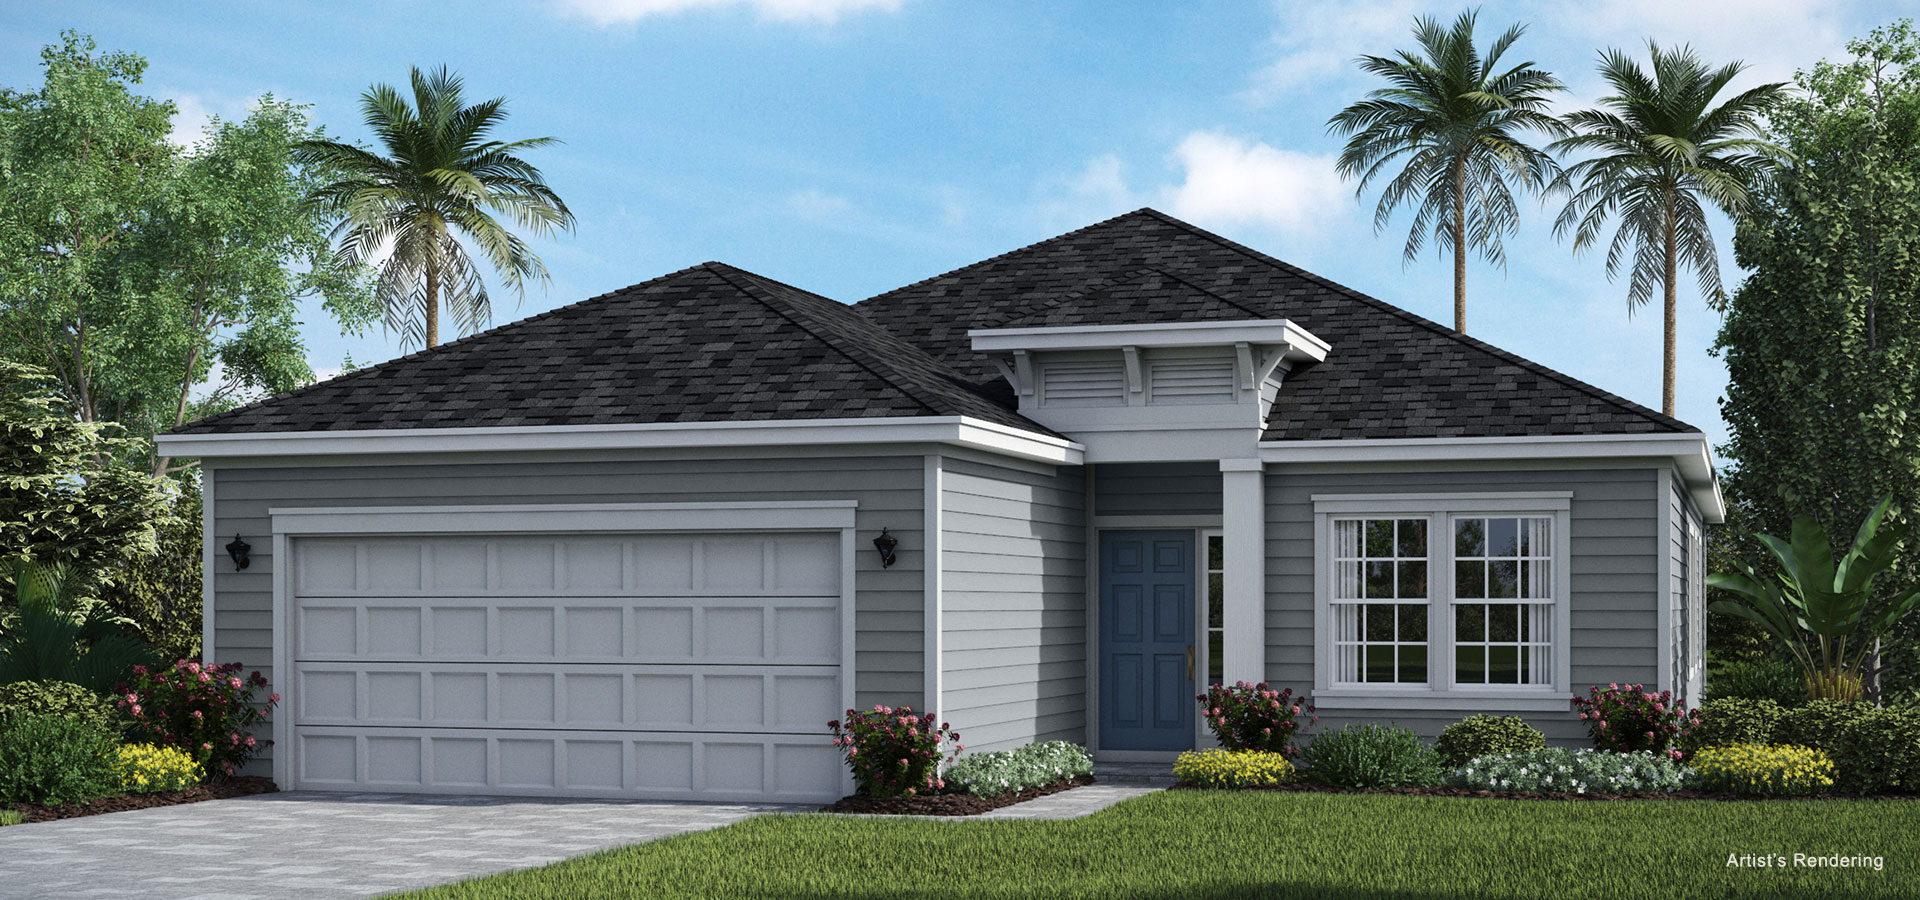 exterior rendering of halle model home at lakeview tributary